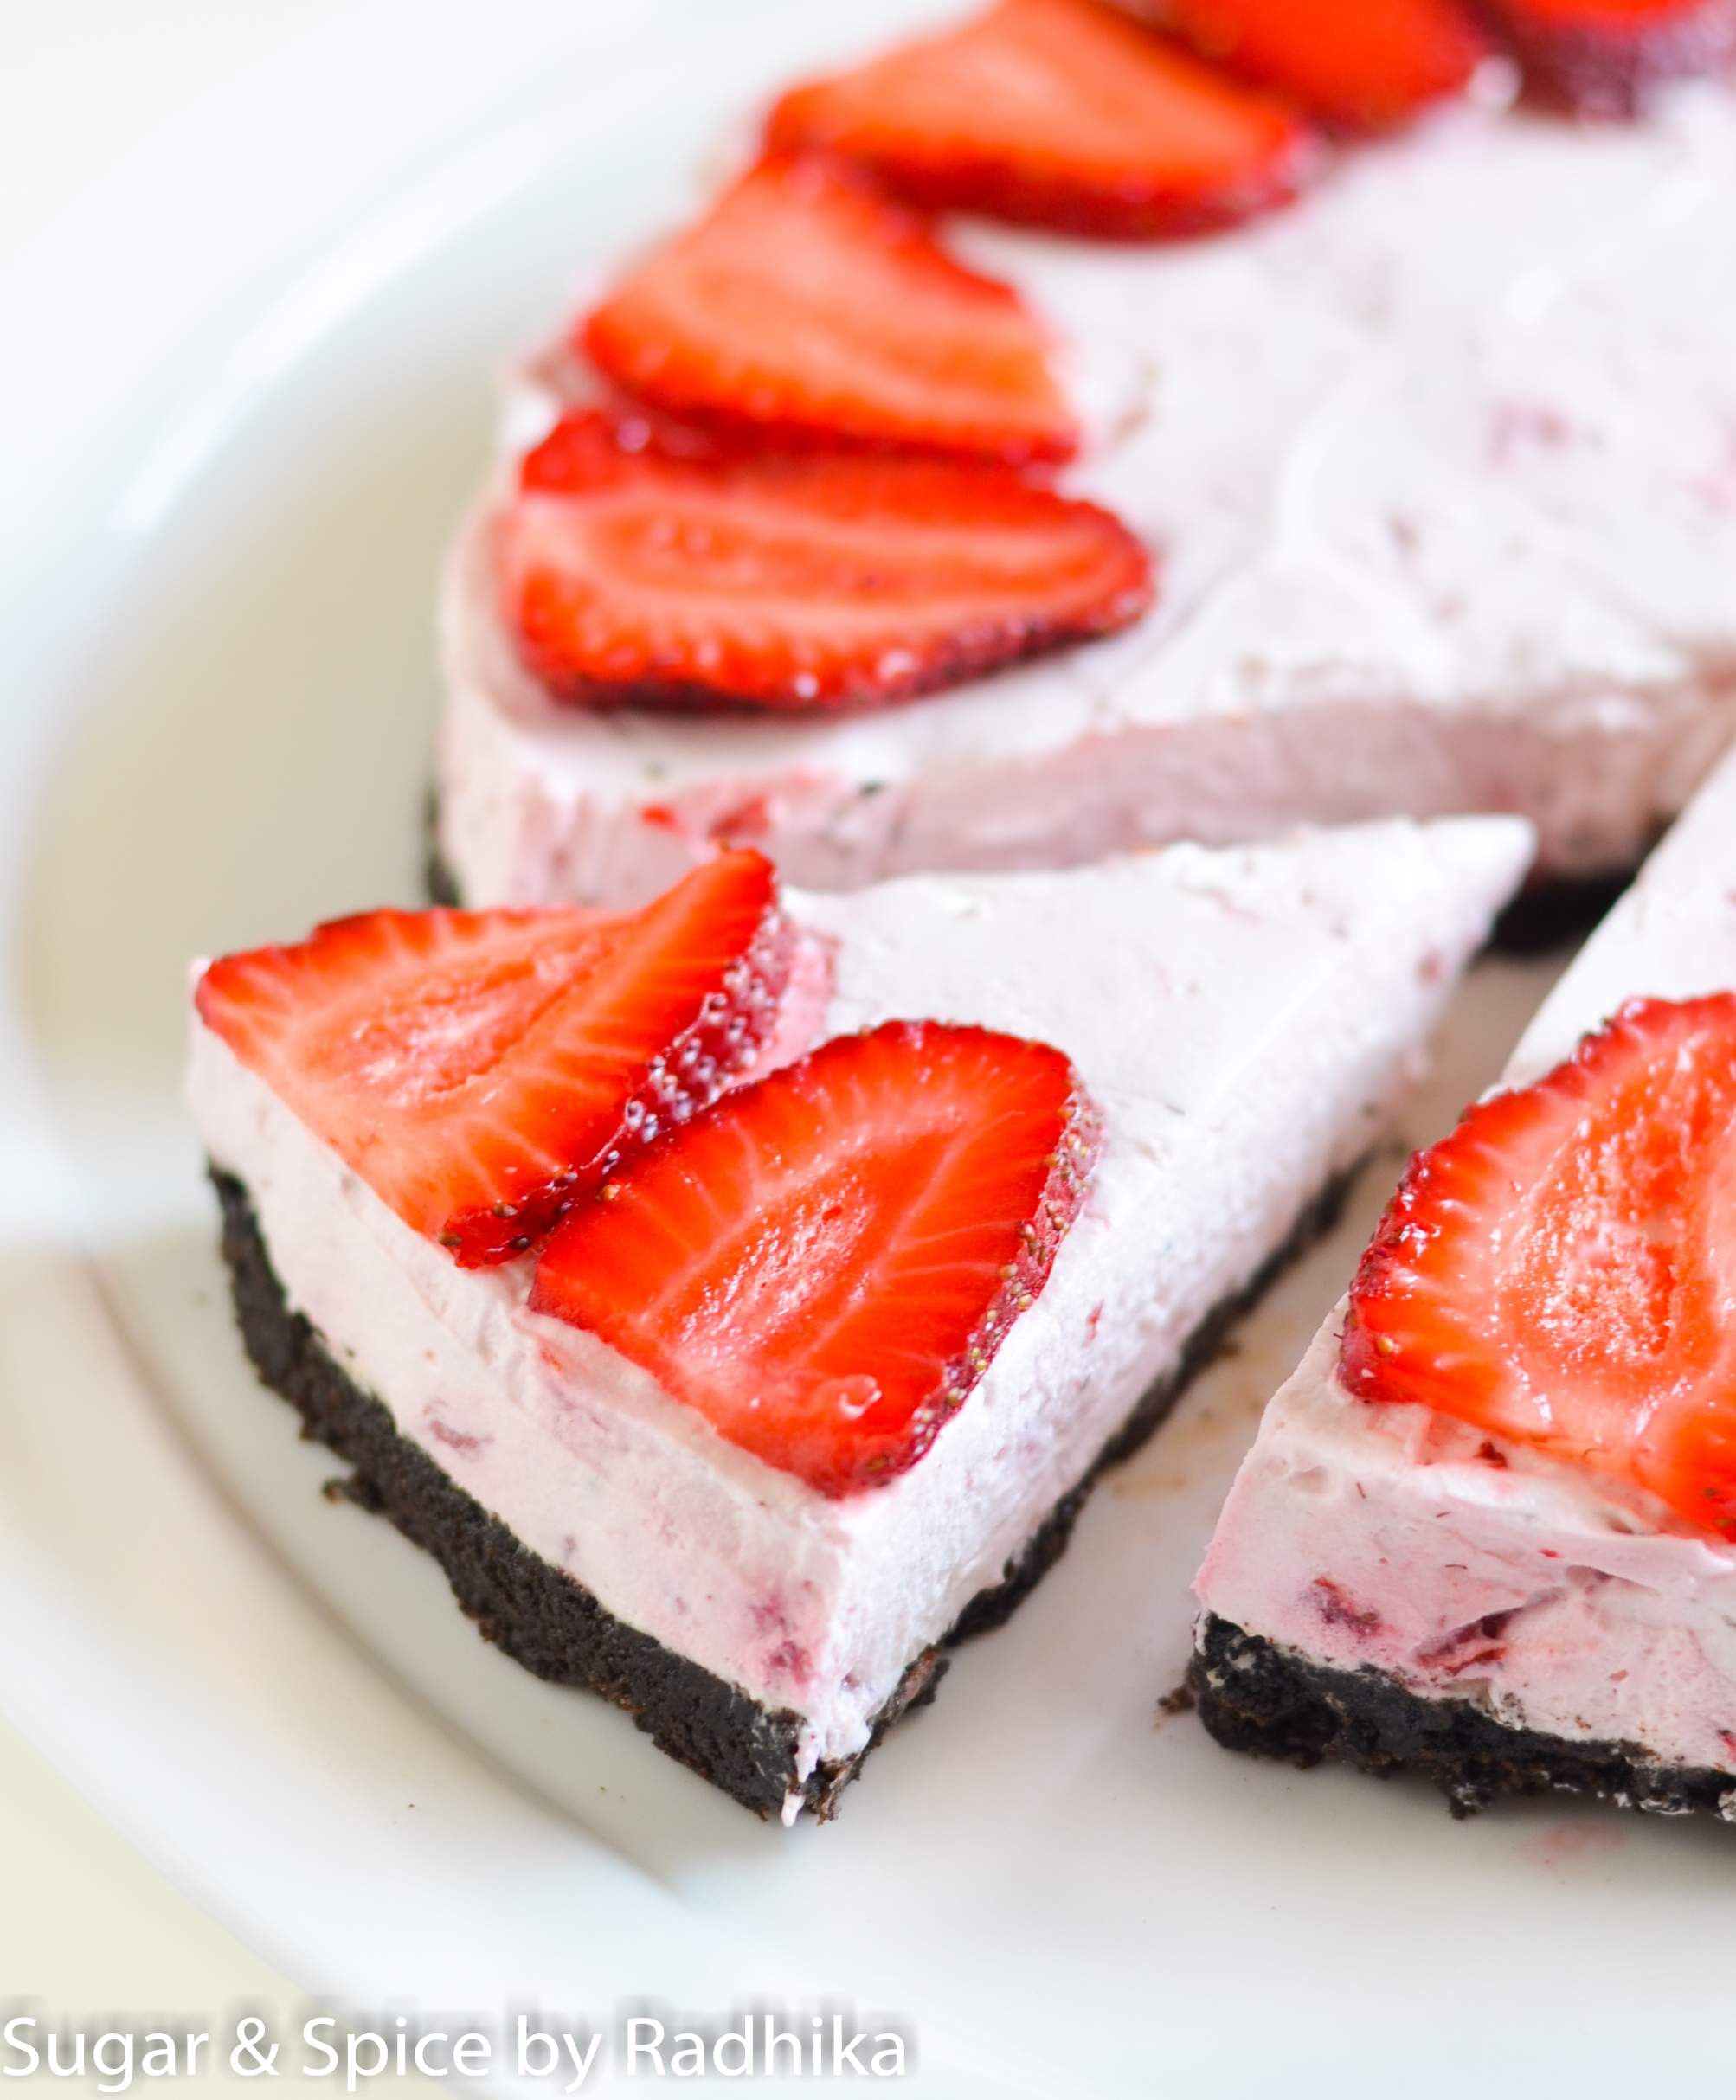 Strawberry and Oreo Cheesecake